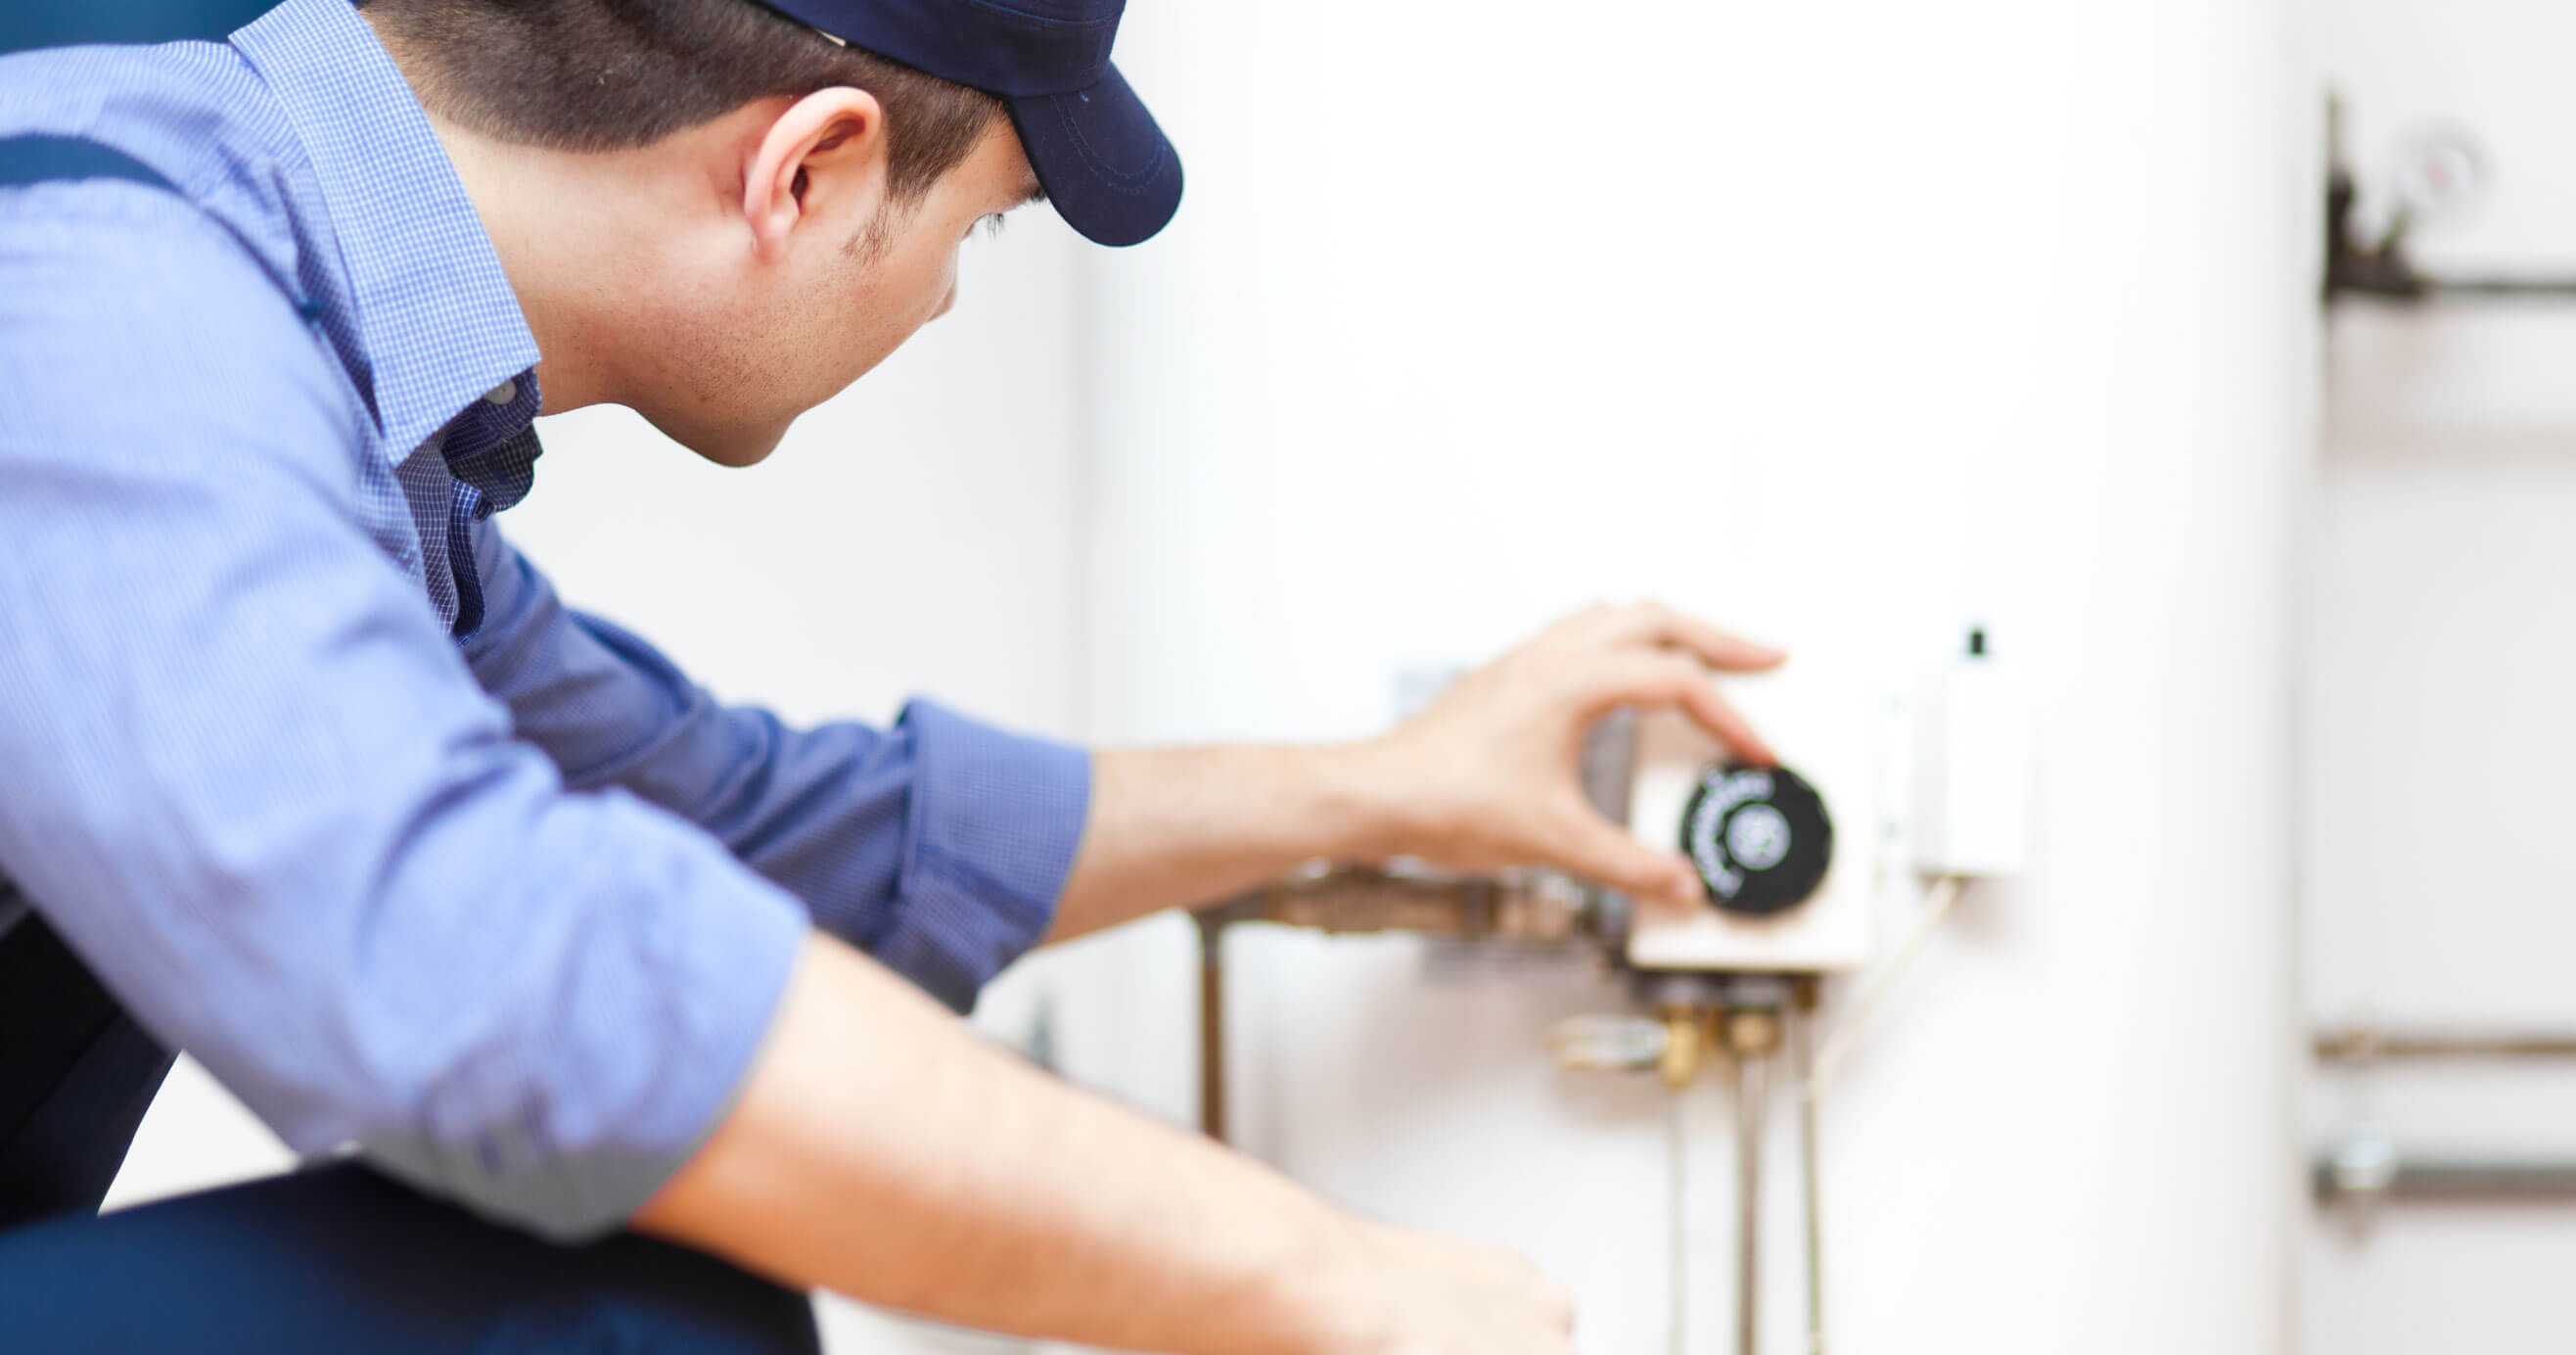 Repairman working on hot water heater.